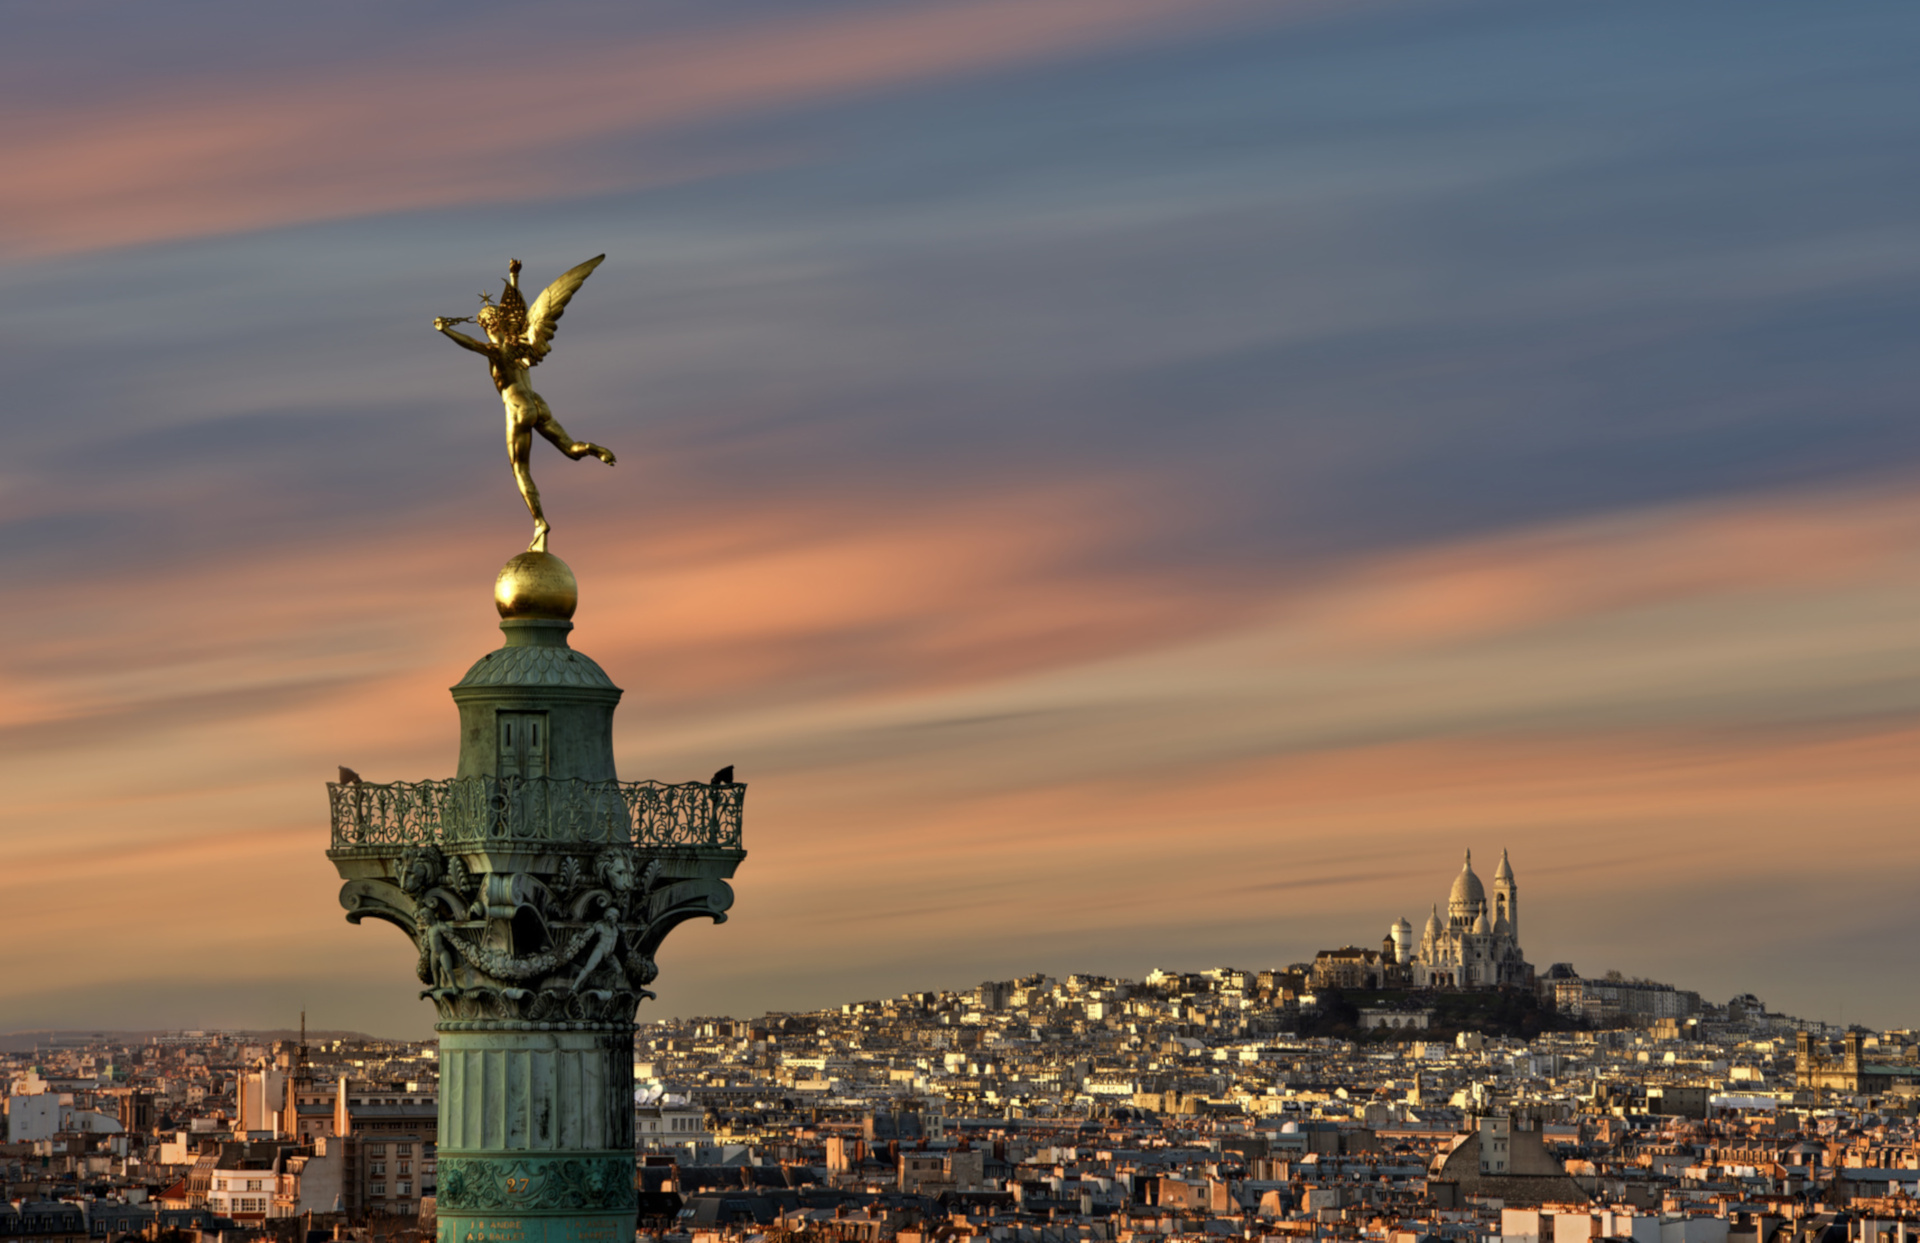 You are minutes away from the Place de la Bastille in the Vivarais vacation rental by Paris Perfect